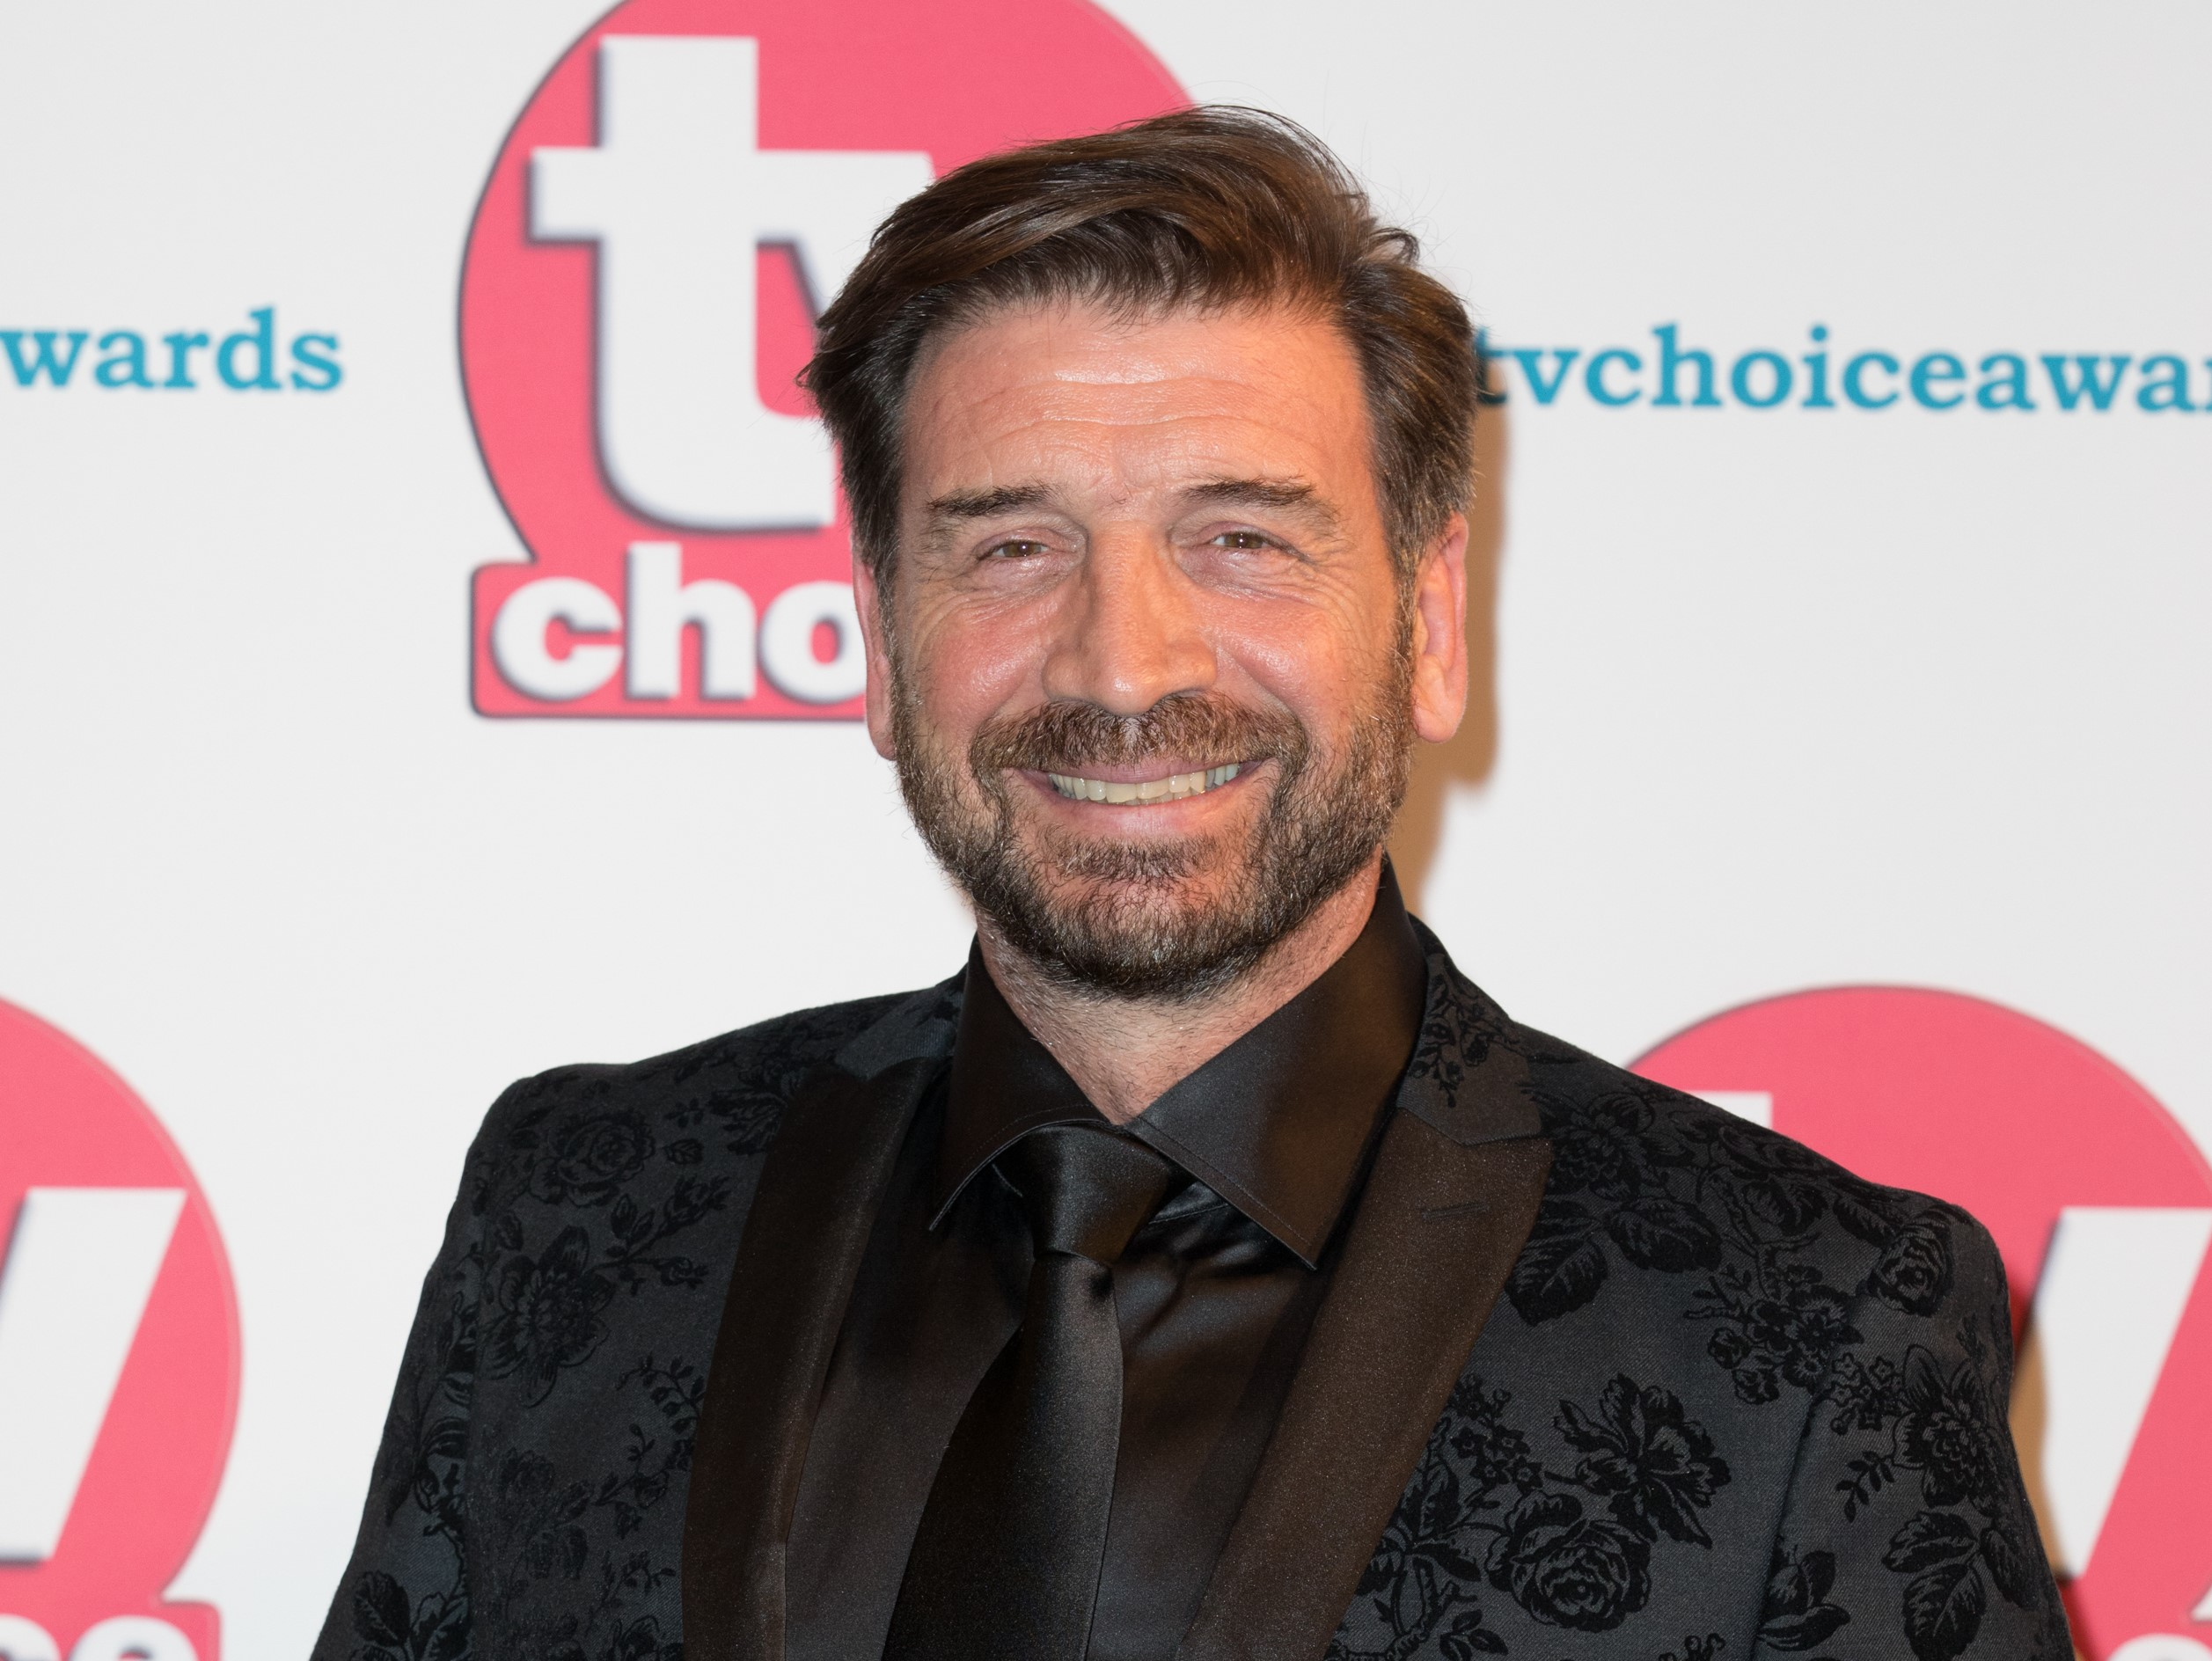 https://cdn.entertainmentdaily.com/2020/02/14131818/Nick-Knowles-3-2.jpg